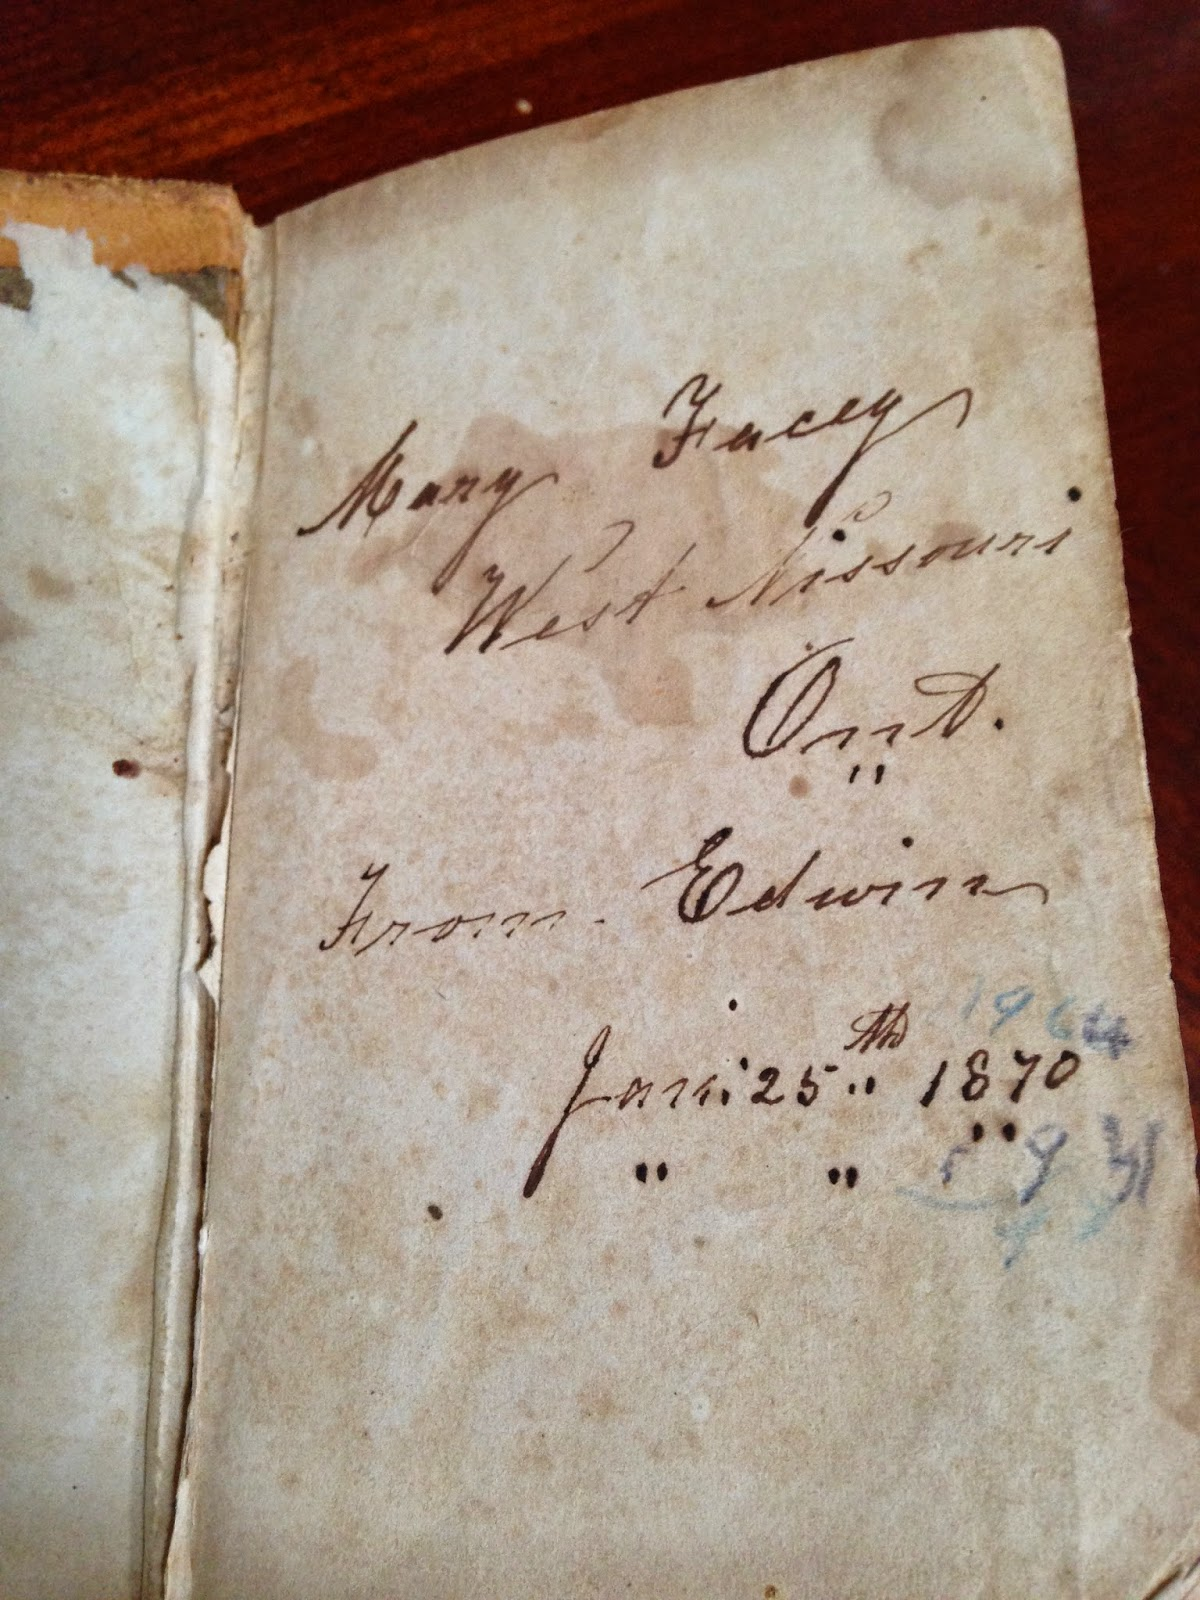 The 1870 Facey Hymn Book Goes to a New Home